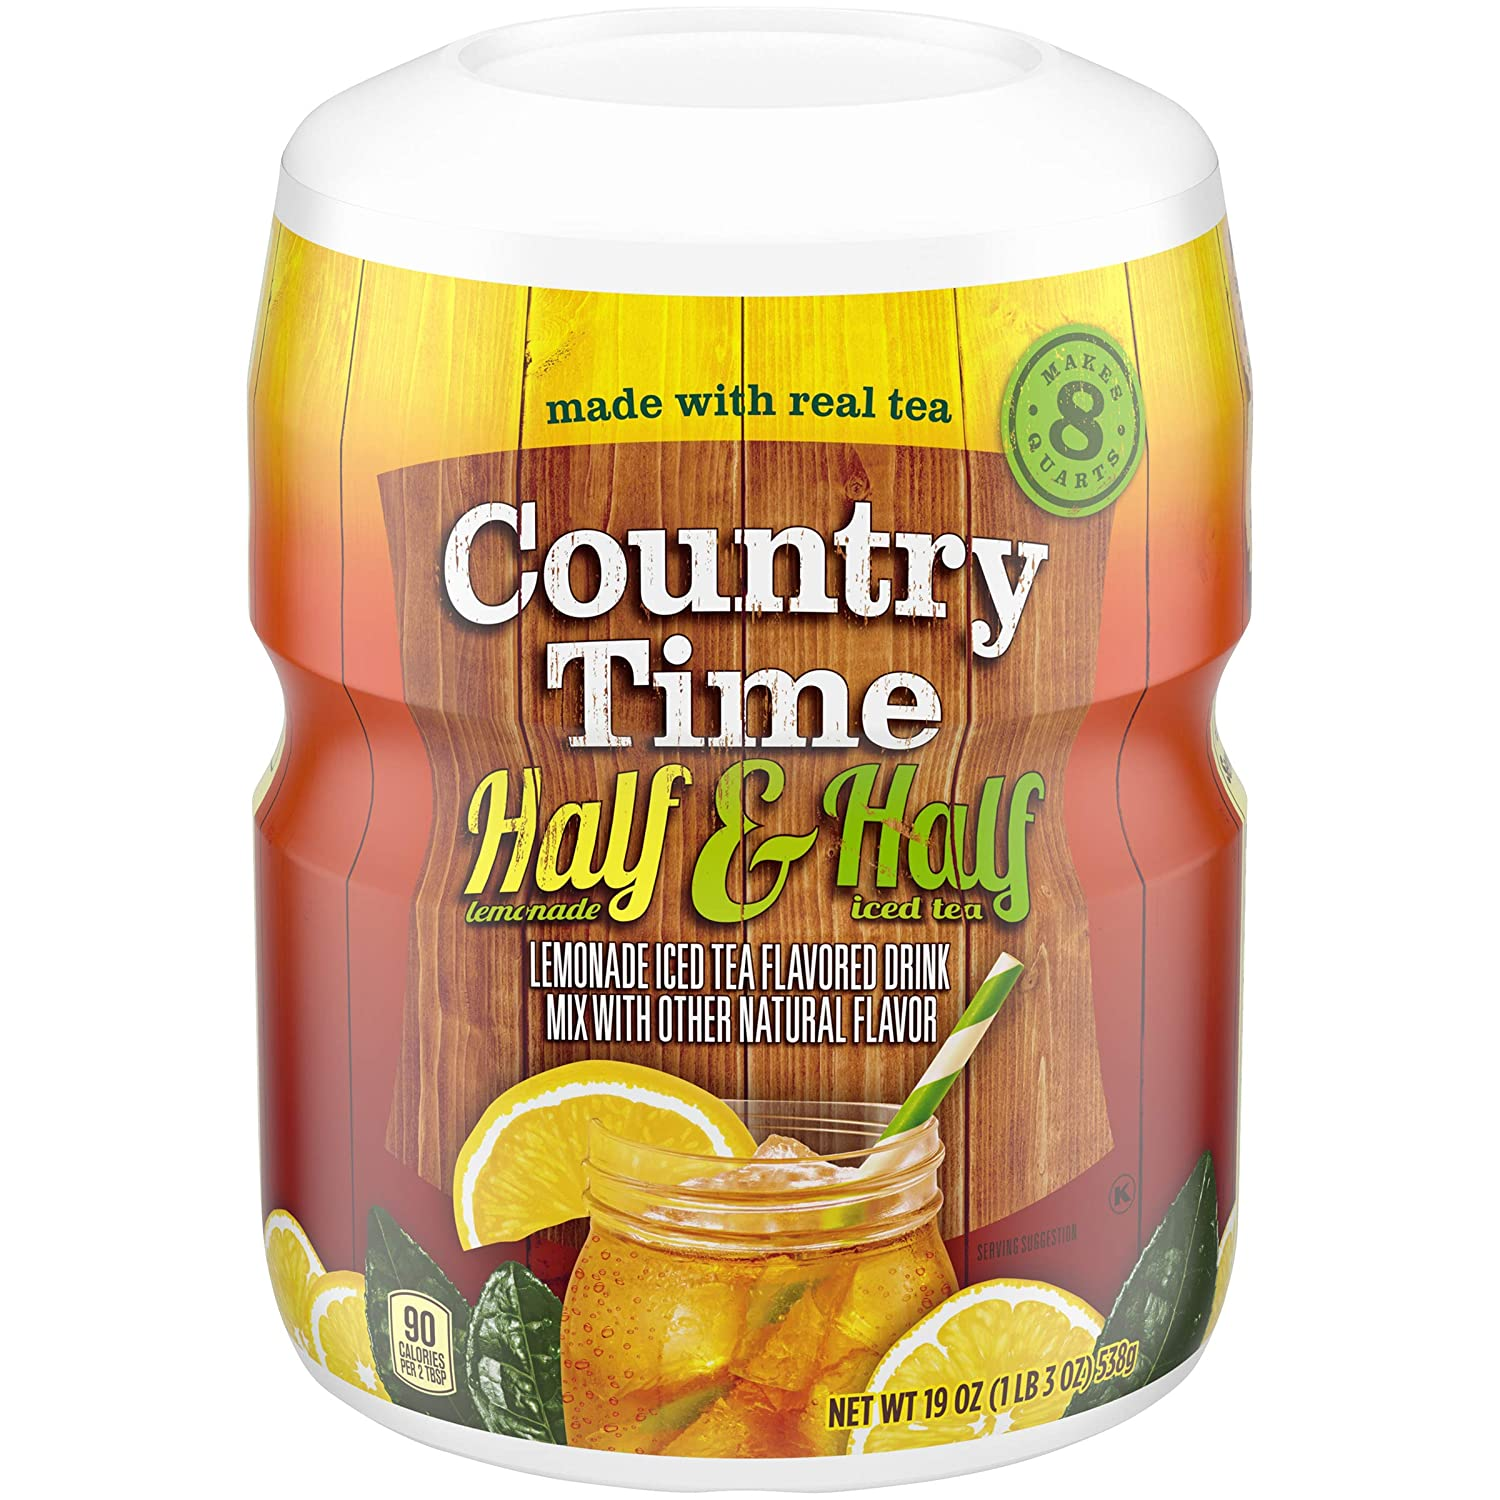 Country Time Half Lemonade & Half Iced Tea Drink Mix (19 oz Canisters, Pack of 12)